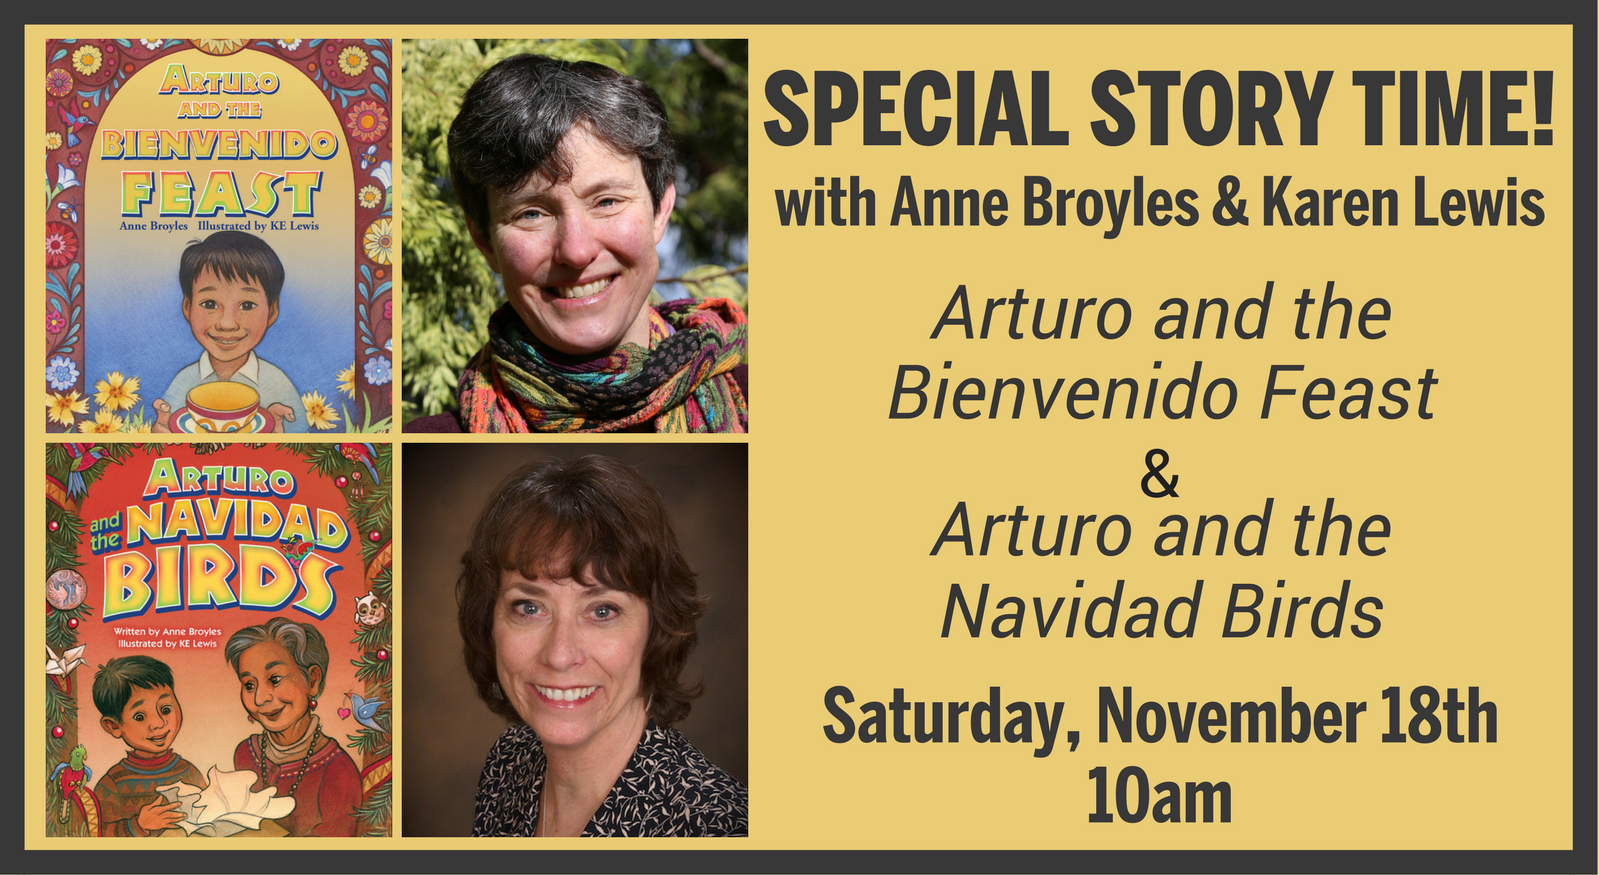 Special Story Time! with Anne Broyles & Karen Lewis